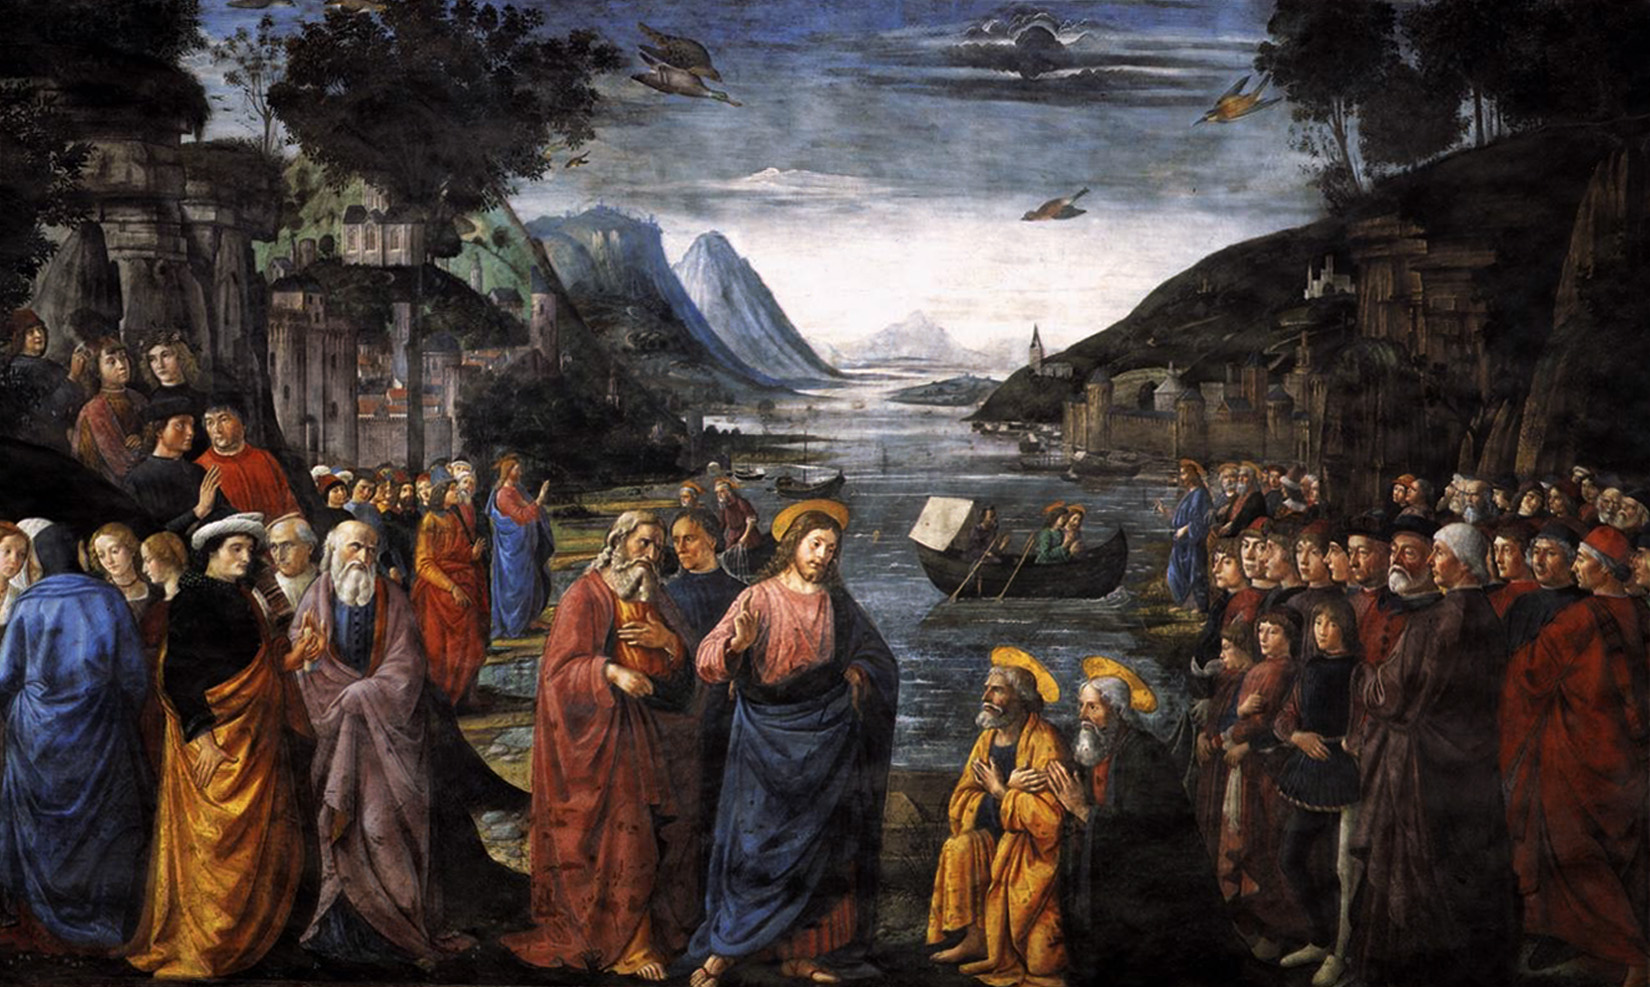 Renaissance painting by Domenico Ghirlandaio of Christ calling the Apostles.